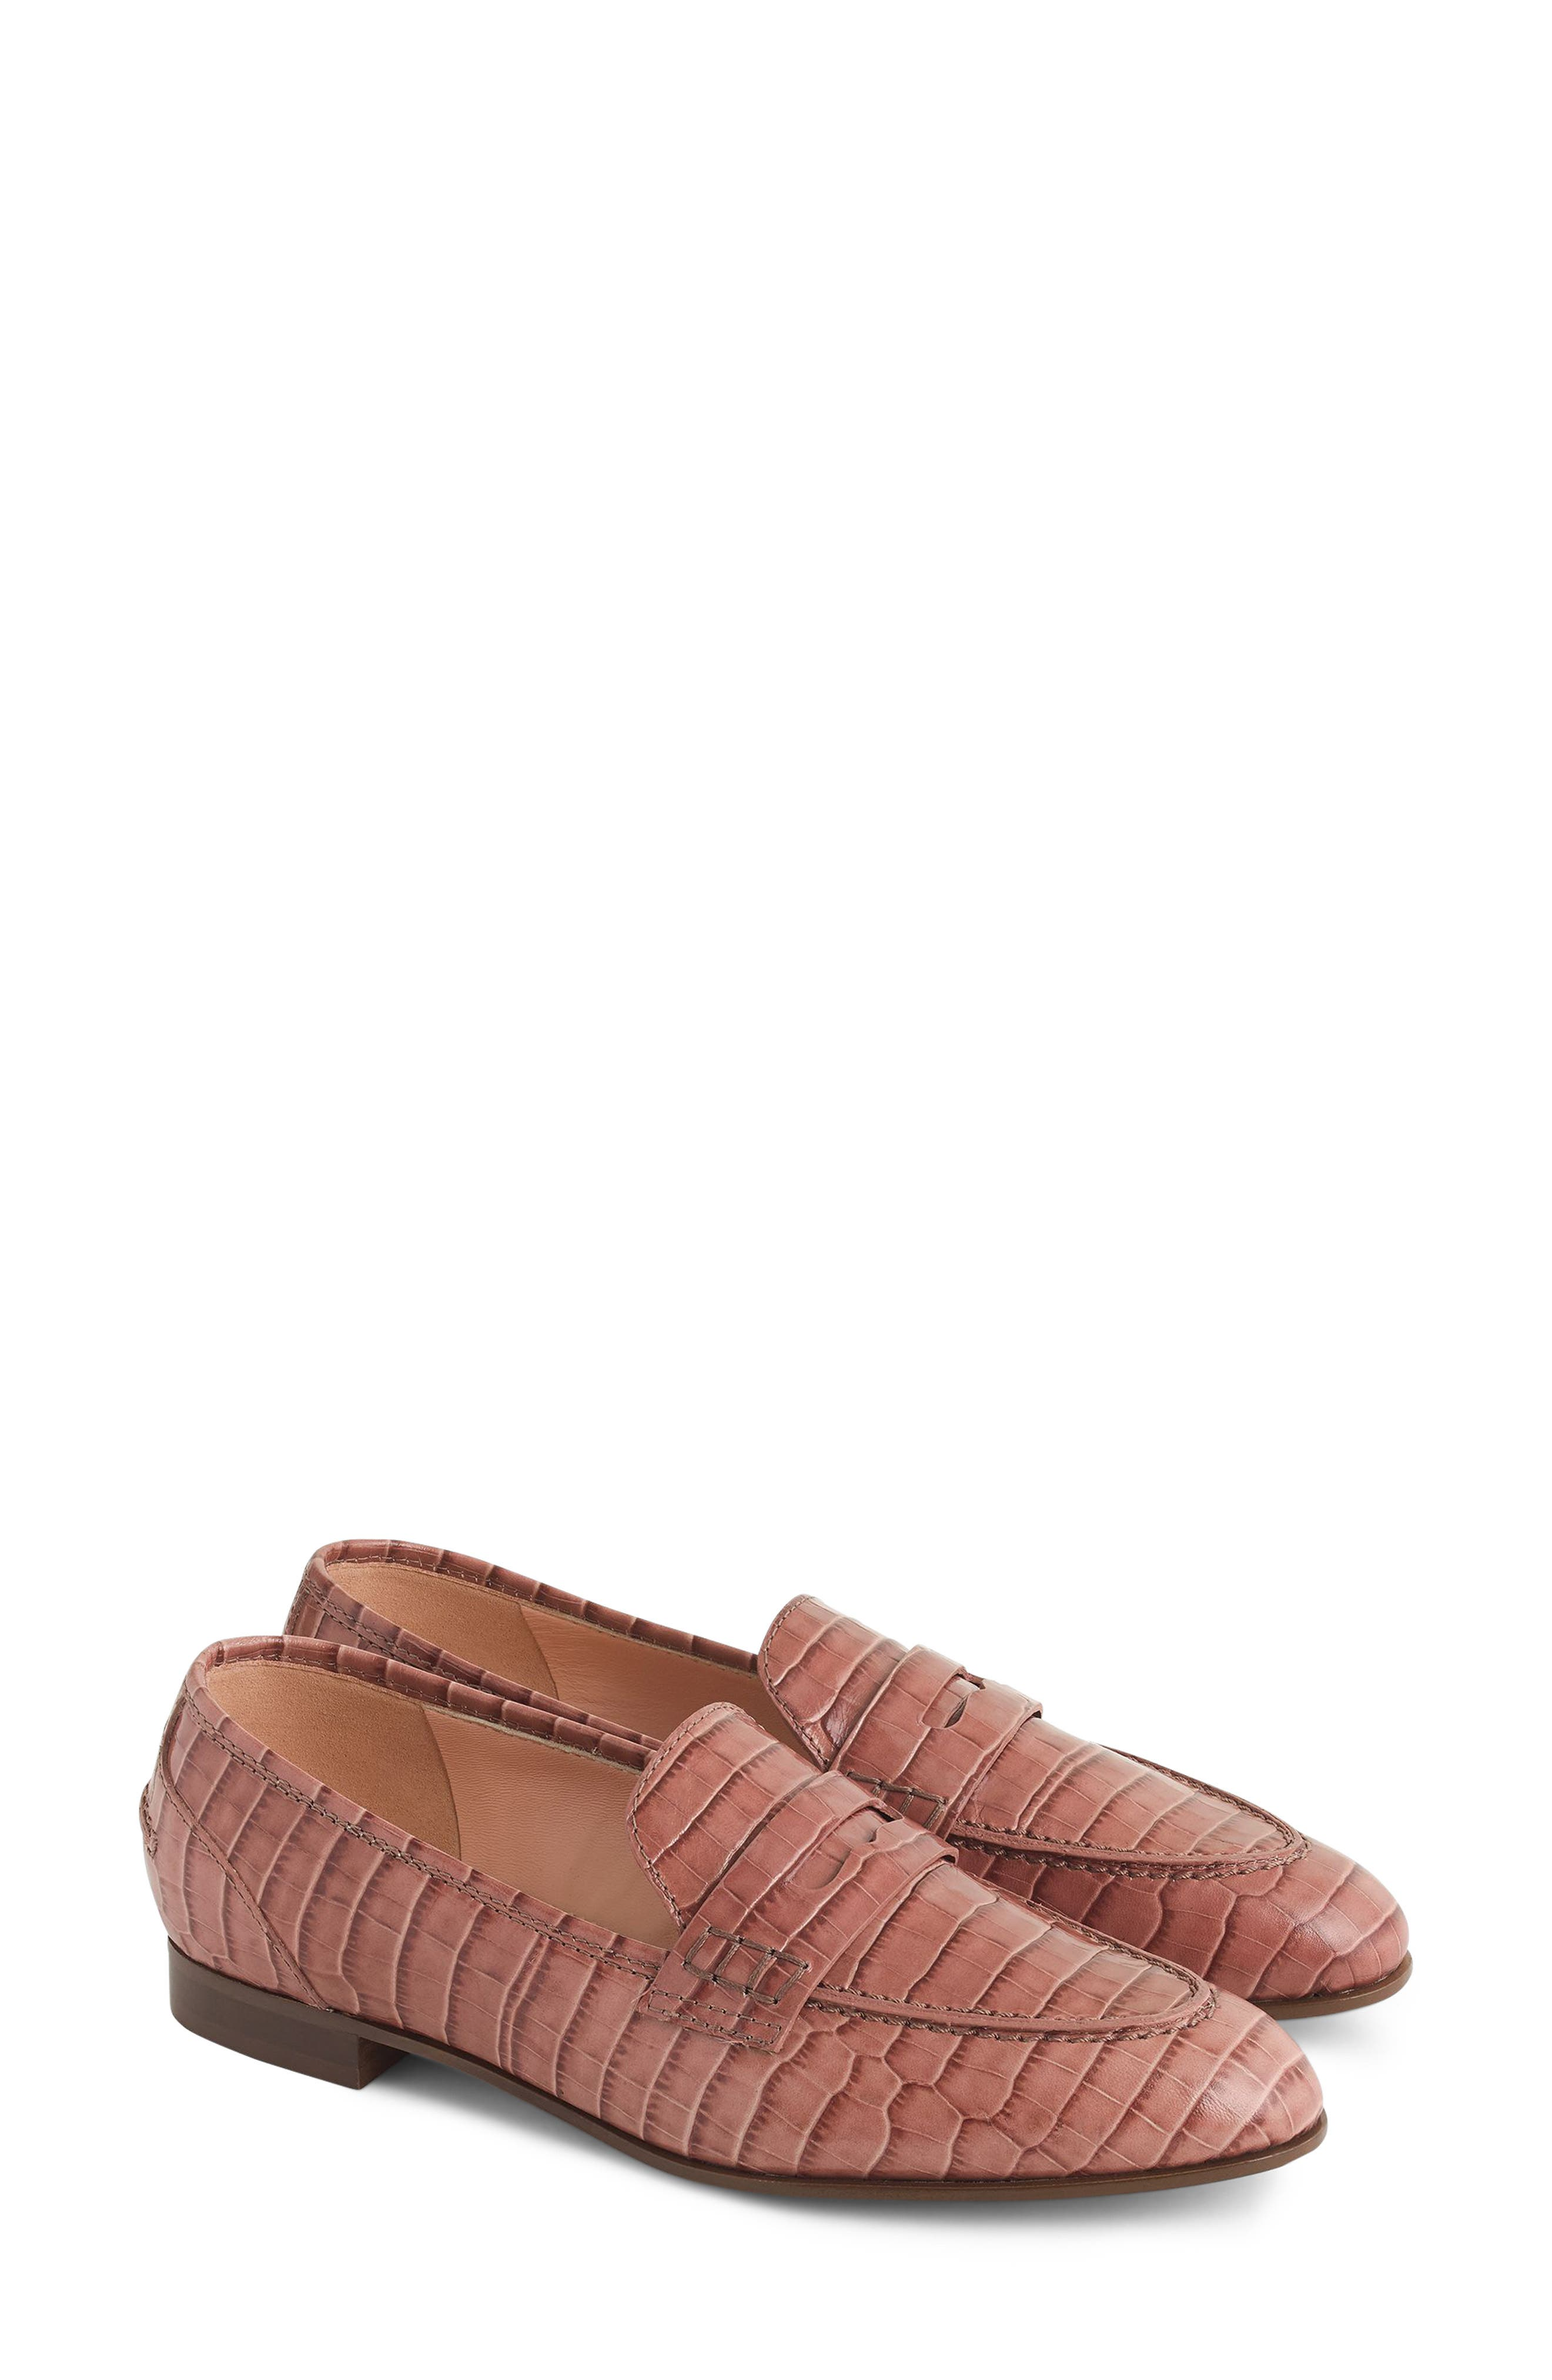 Academy Penny Loafer,                             Main thumbnail 1, color,                             JASMINE FROST